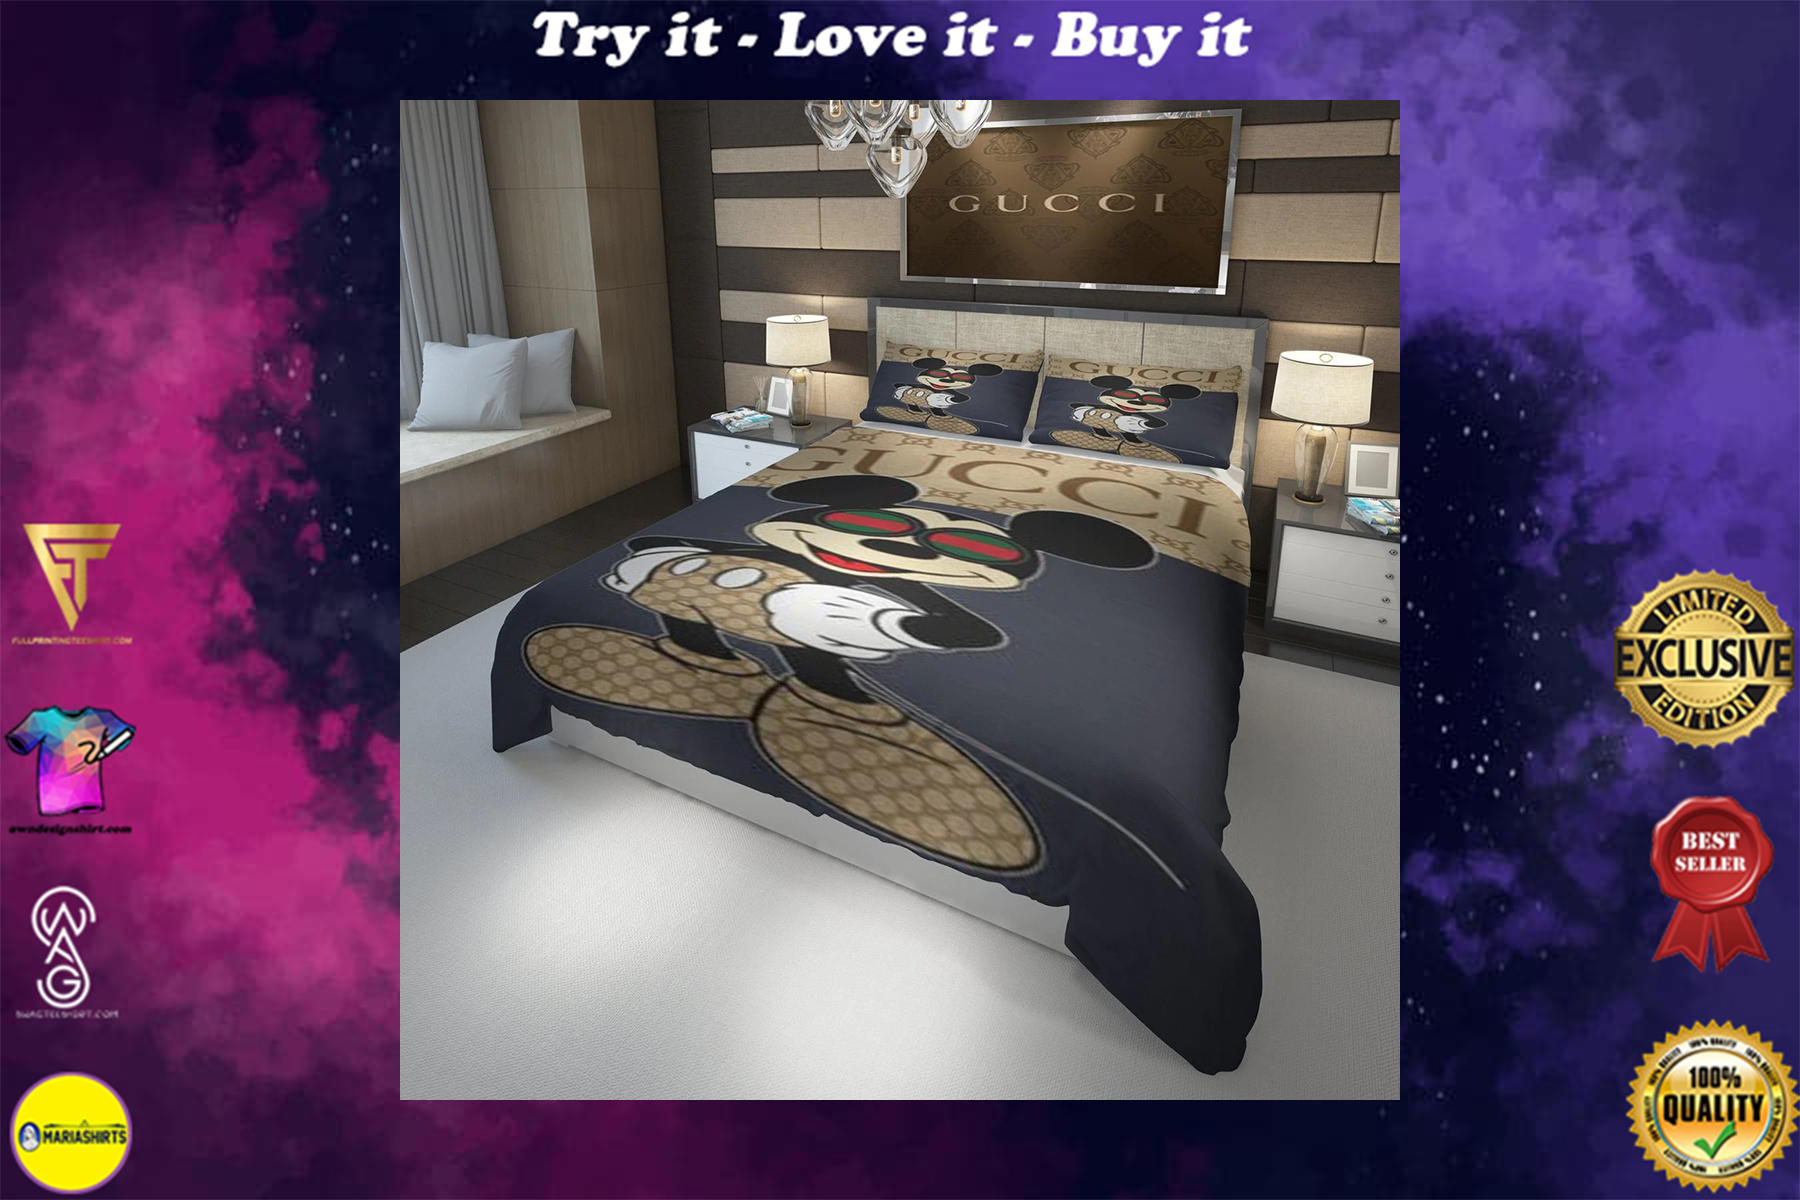 [special edition] gucci mickey mouse with glasses bedding set - maria